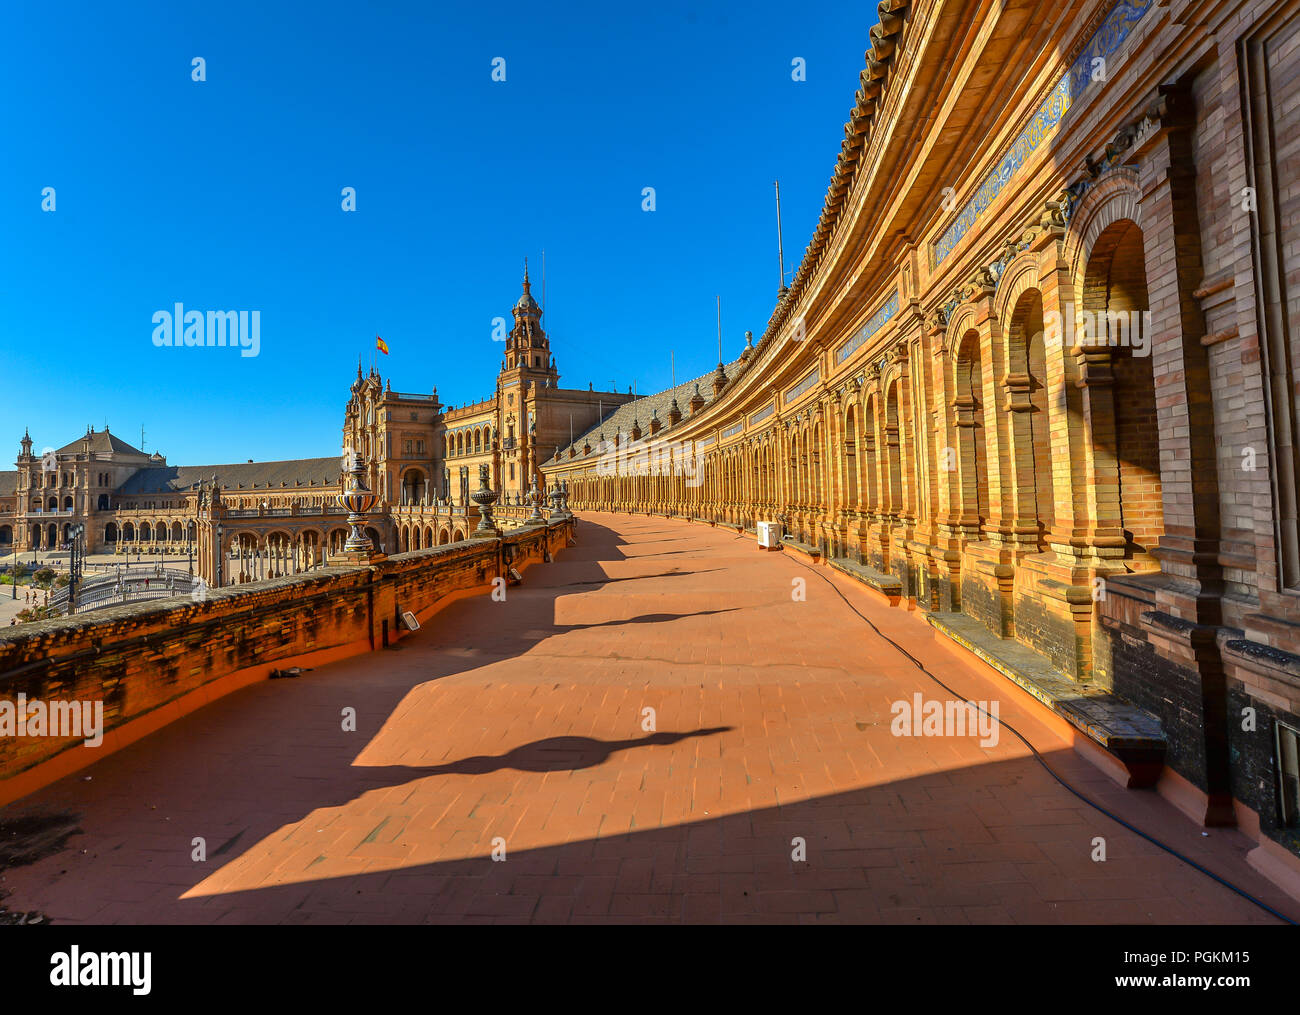 Plaza Espana - Seville - Spain - Stock Image